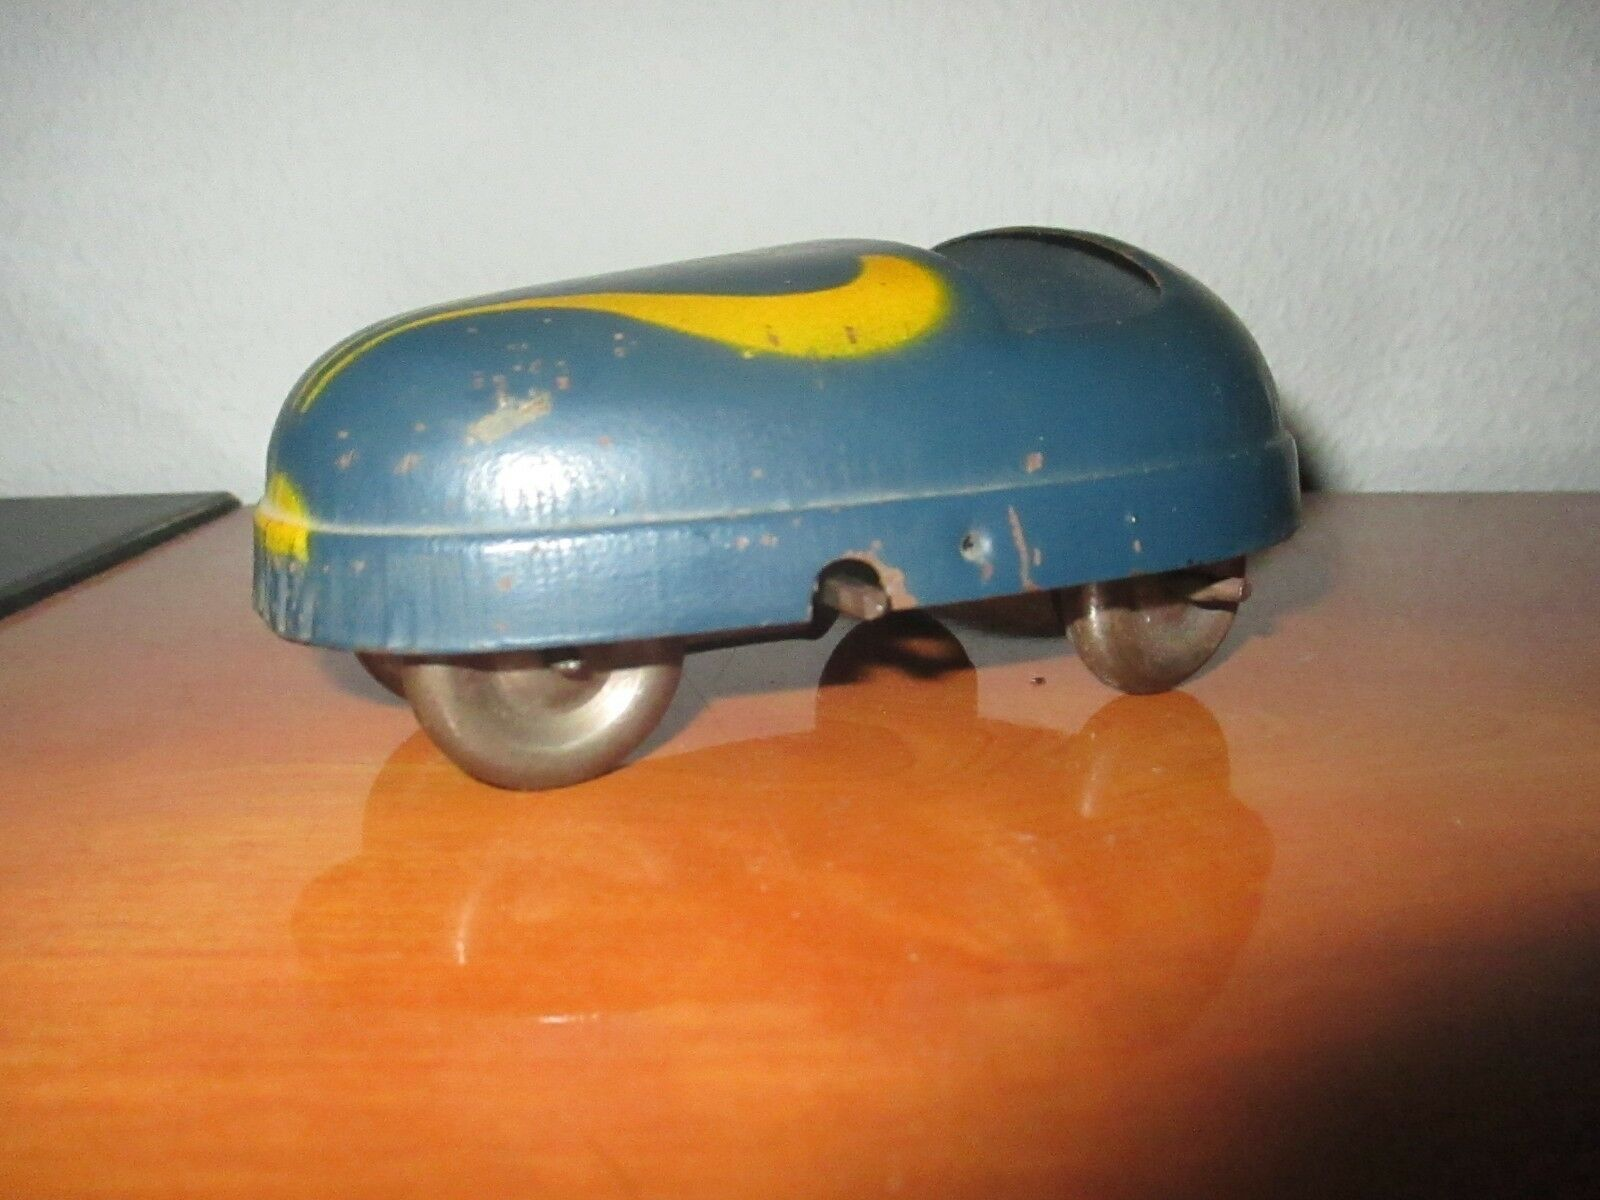 JOUET ANCIEN TOLE AUTO TAMPONNEUSE JRD OLD TOY FRENCH ANTIC